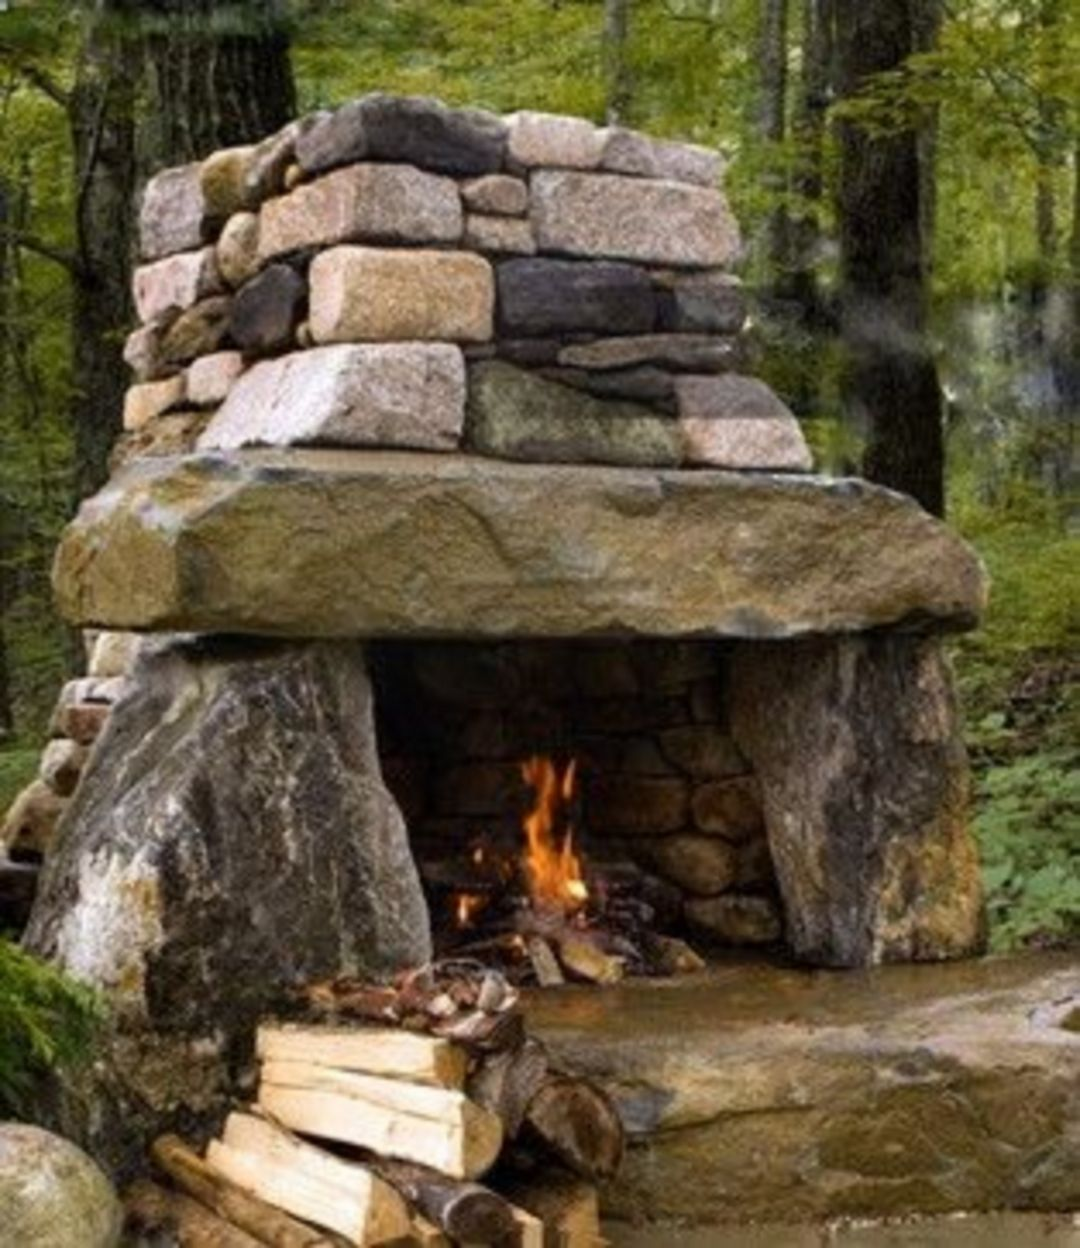 Random Pictures for Fun.-rustic-outdoor-fireplace-design.jpg